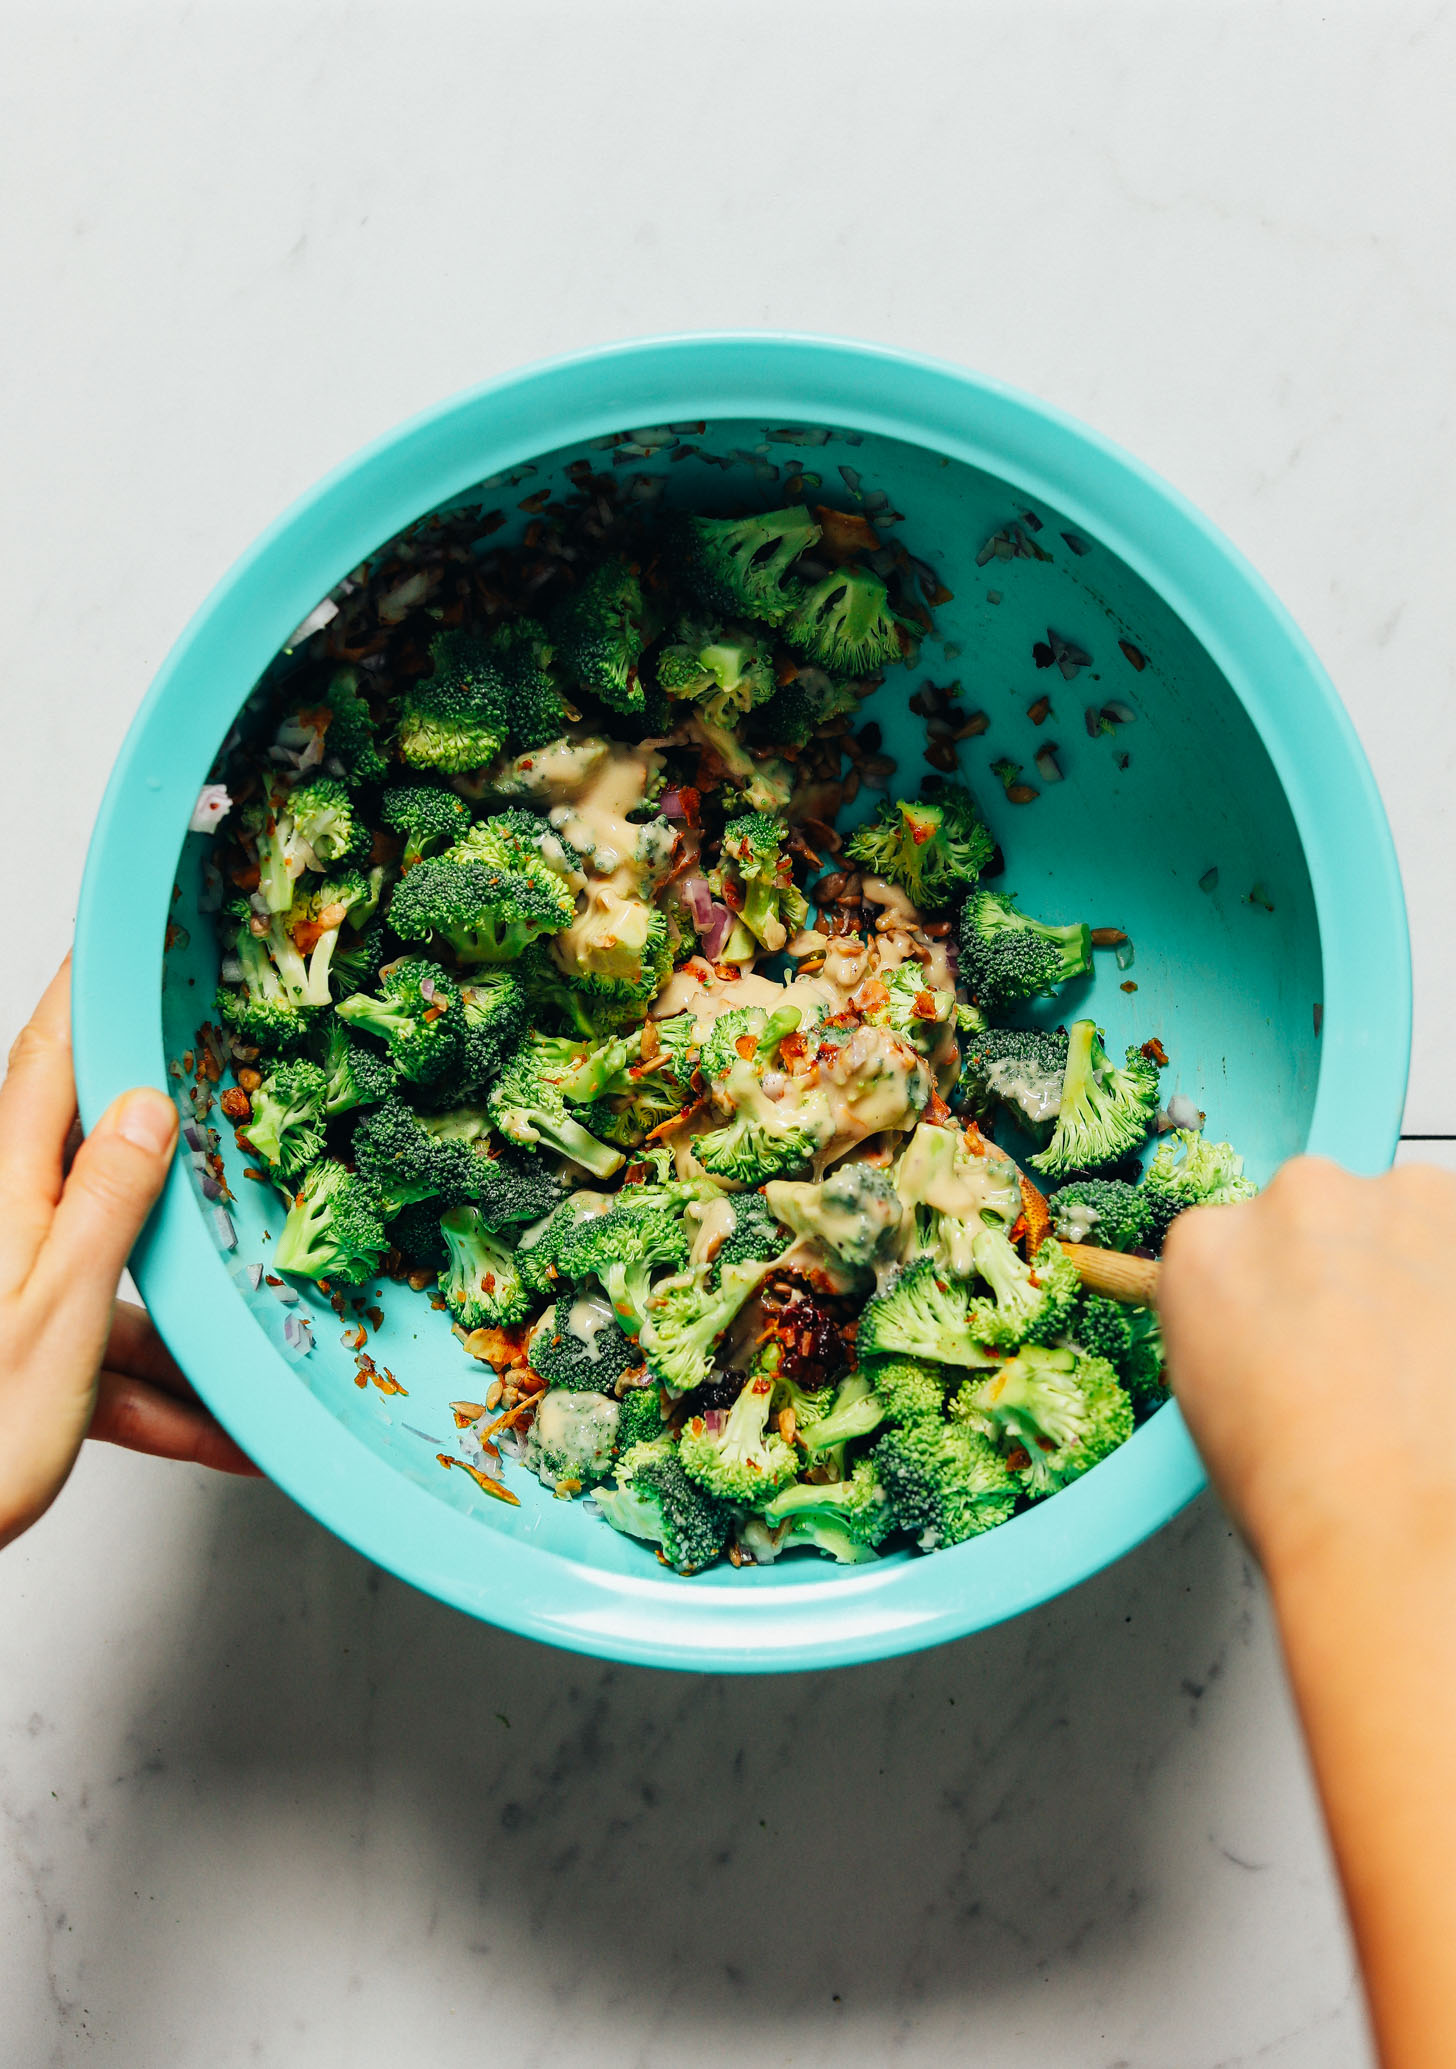 Using a wooden spoon to stir a mixing bowl of Creamy Vegan Broccoli Salad